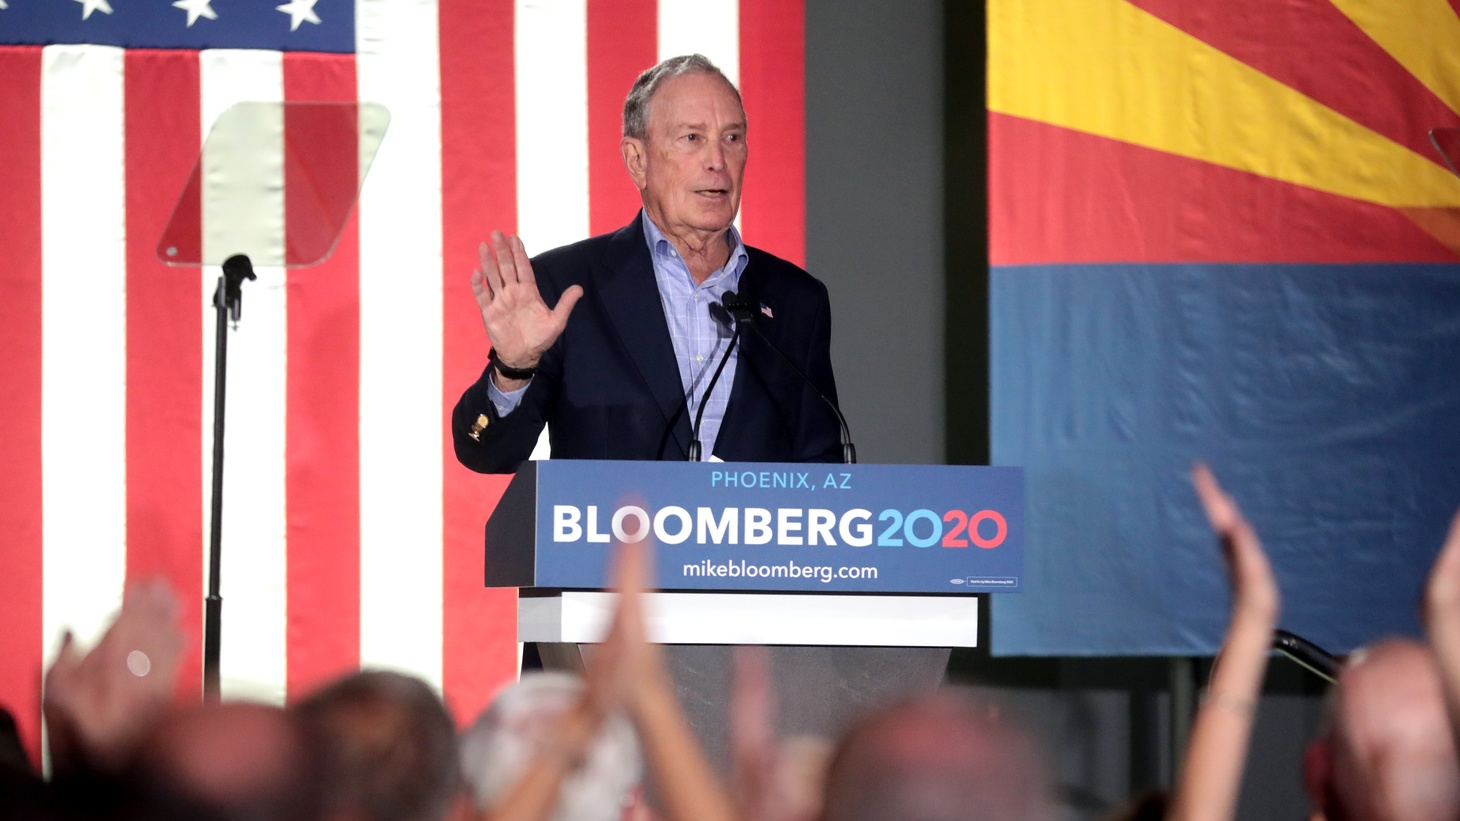 Former Mayor Mike Bloomberg speaking with supporters at a campaign rally at Warehouse 215 at Bentley Projects in Phoenix, Arizona.